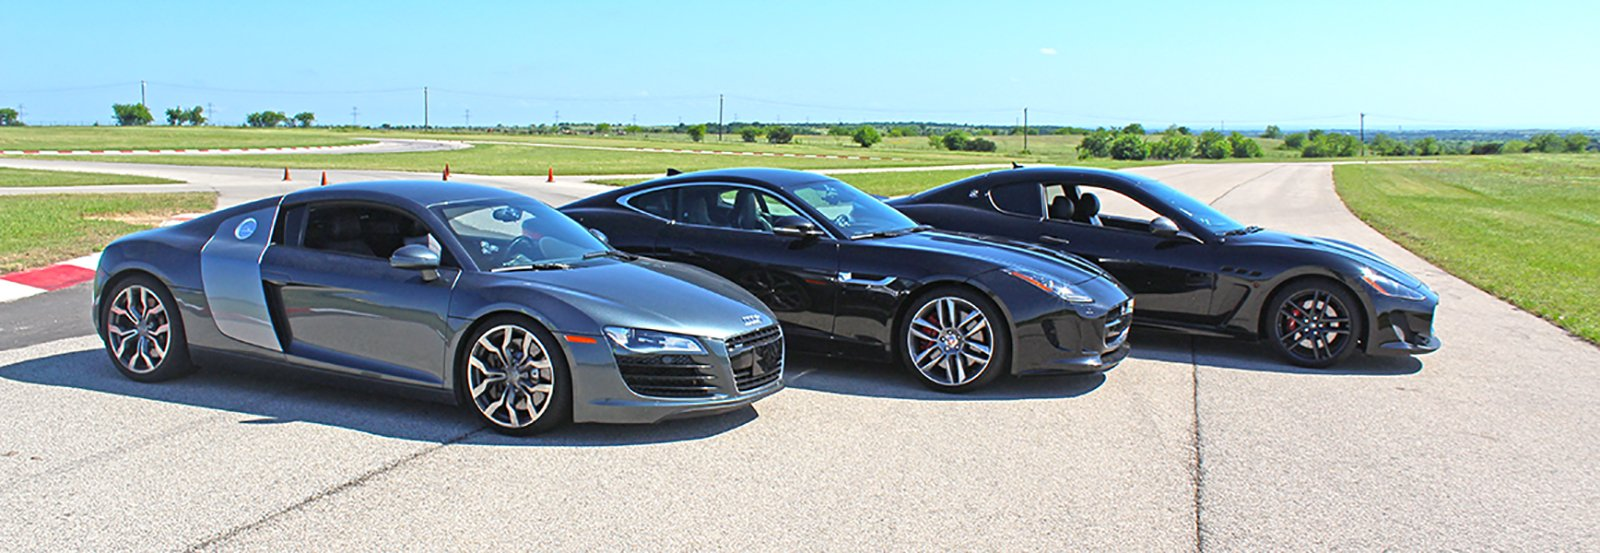 Race Car Driving School Dallas